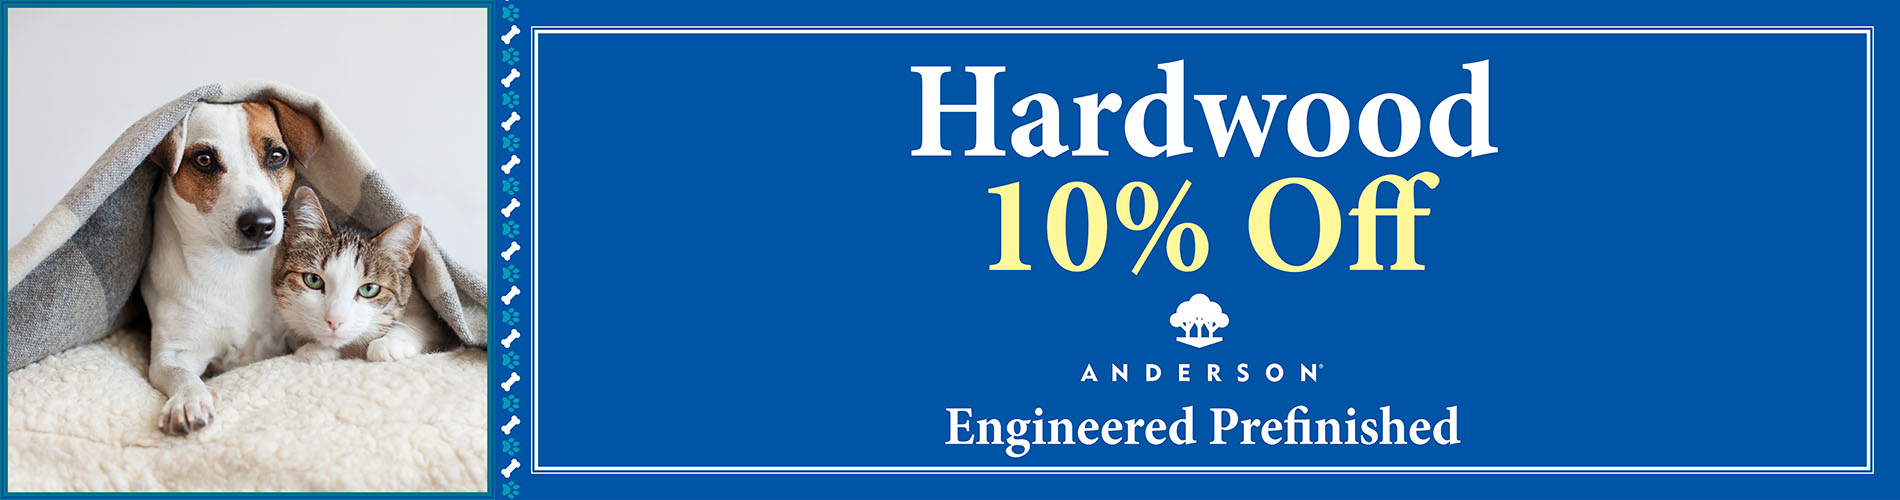 Hardwood  Engineered Prefinished  10% Off  Anderson